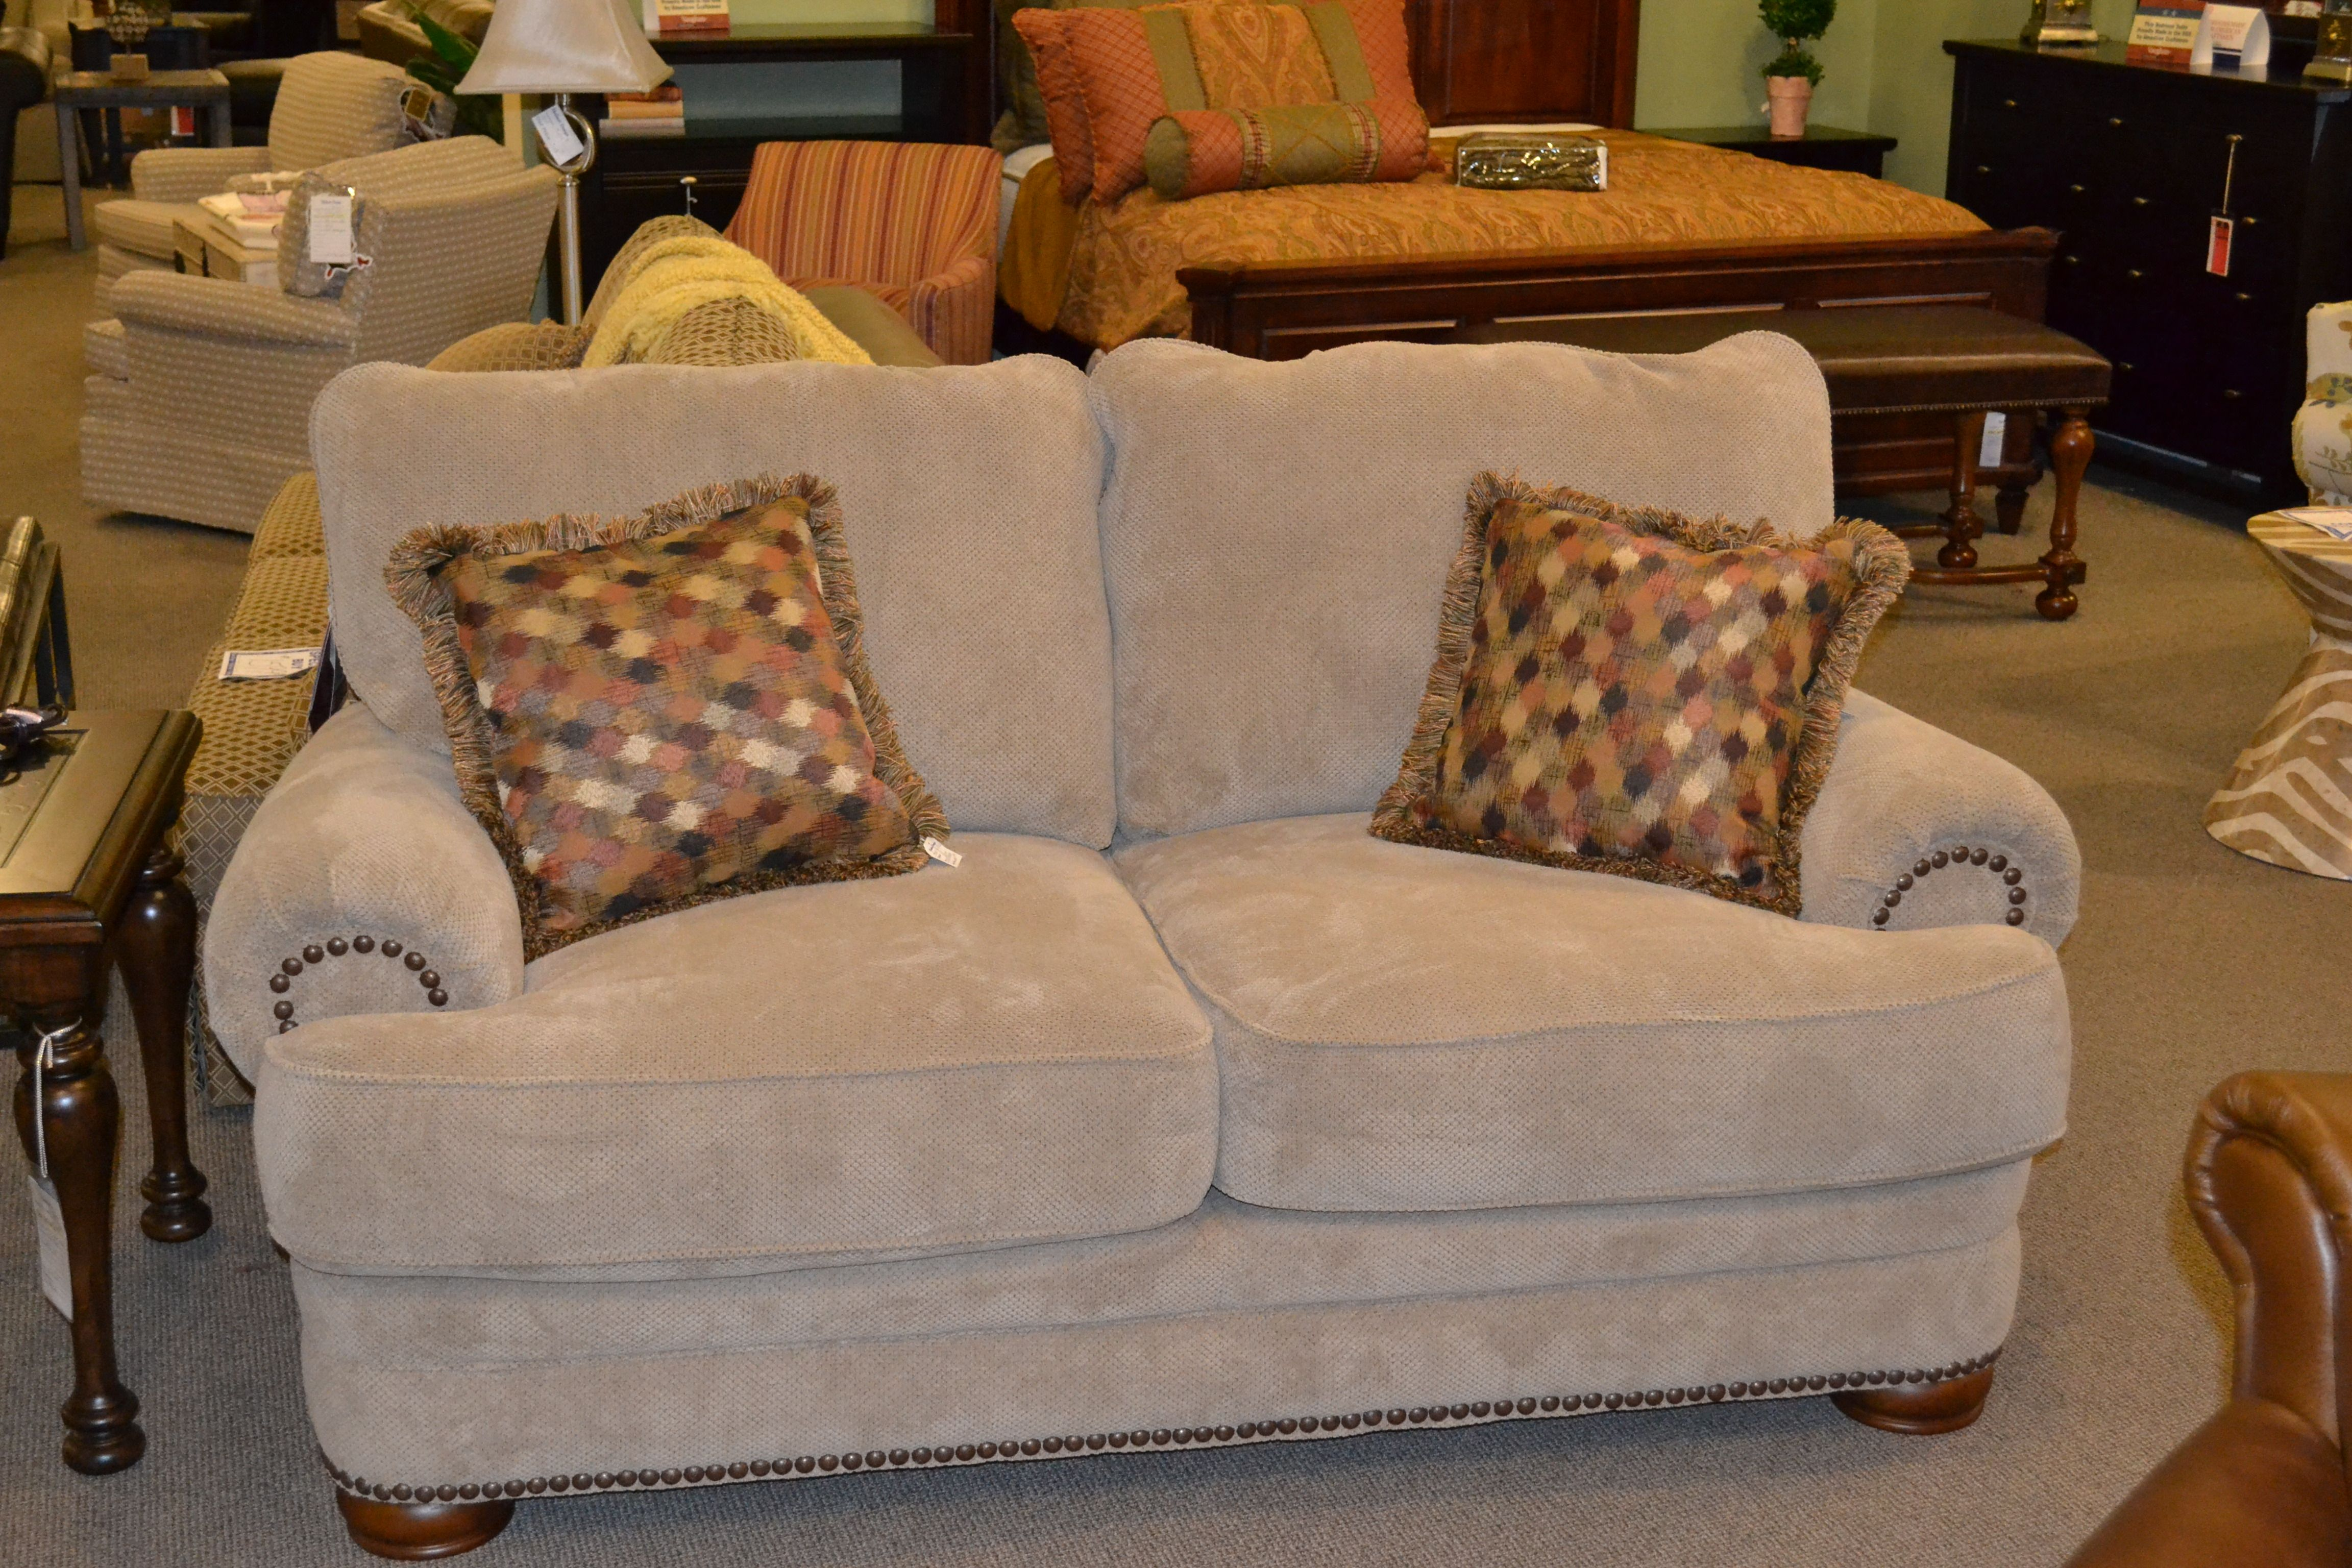 Lane Action Stationary Loveseat At Shubert Design In The Saintlouis Area Leather Bedroom Furniture Leather Furniture